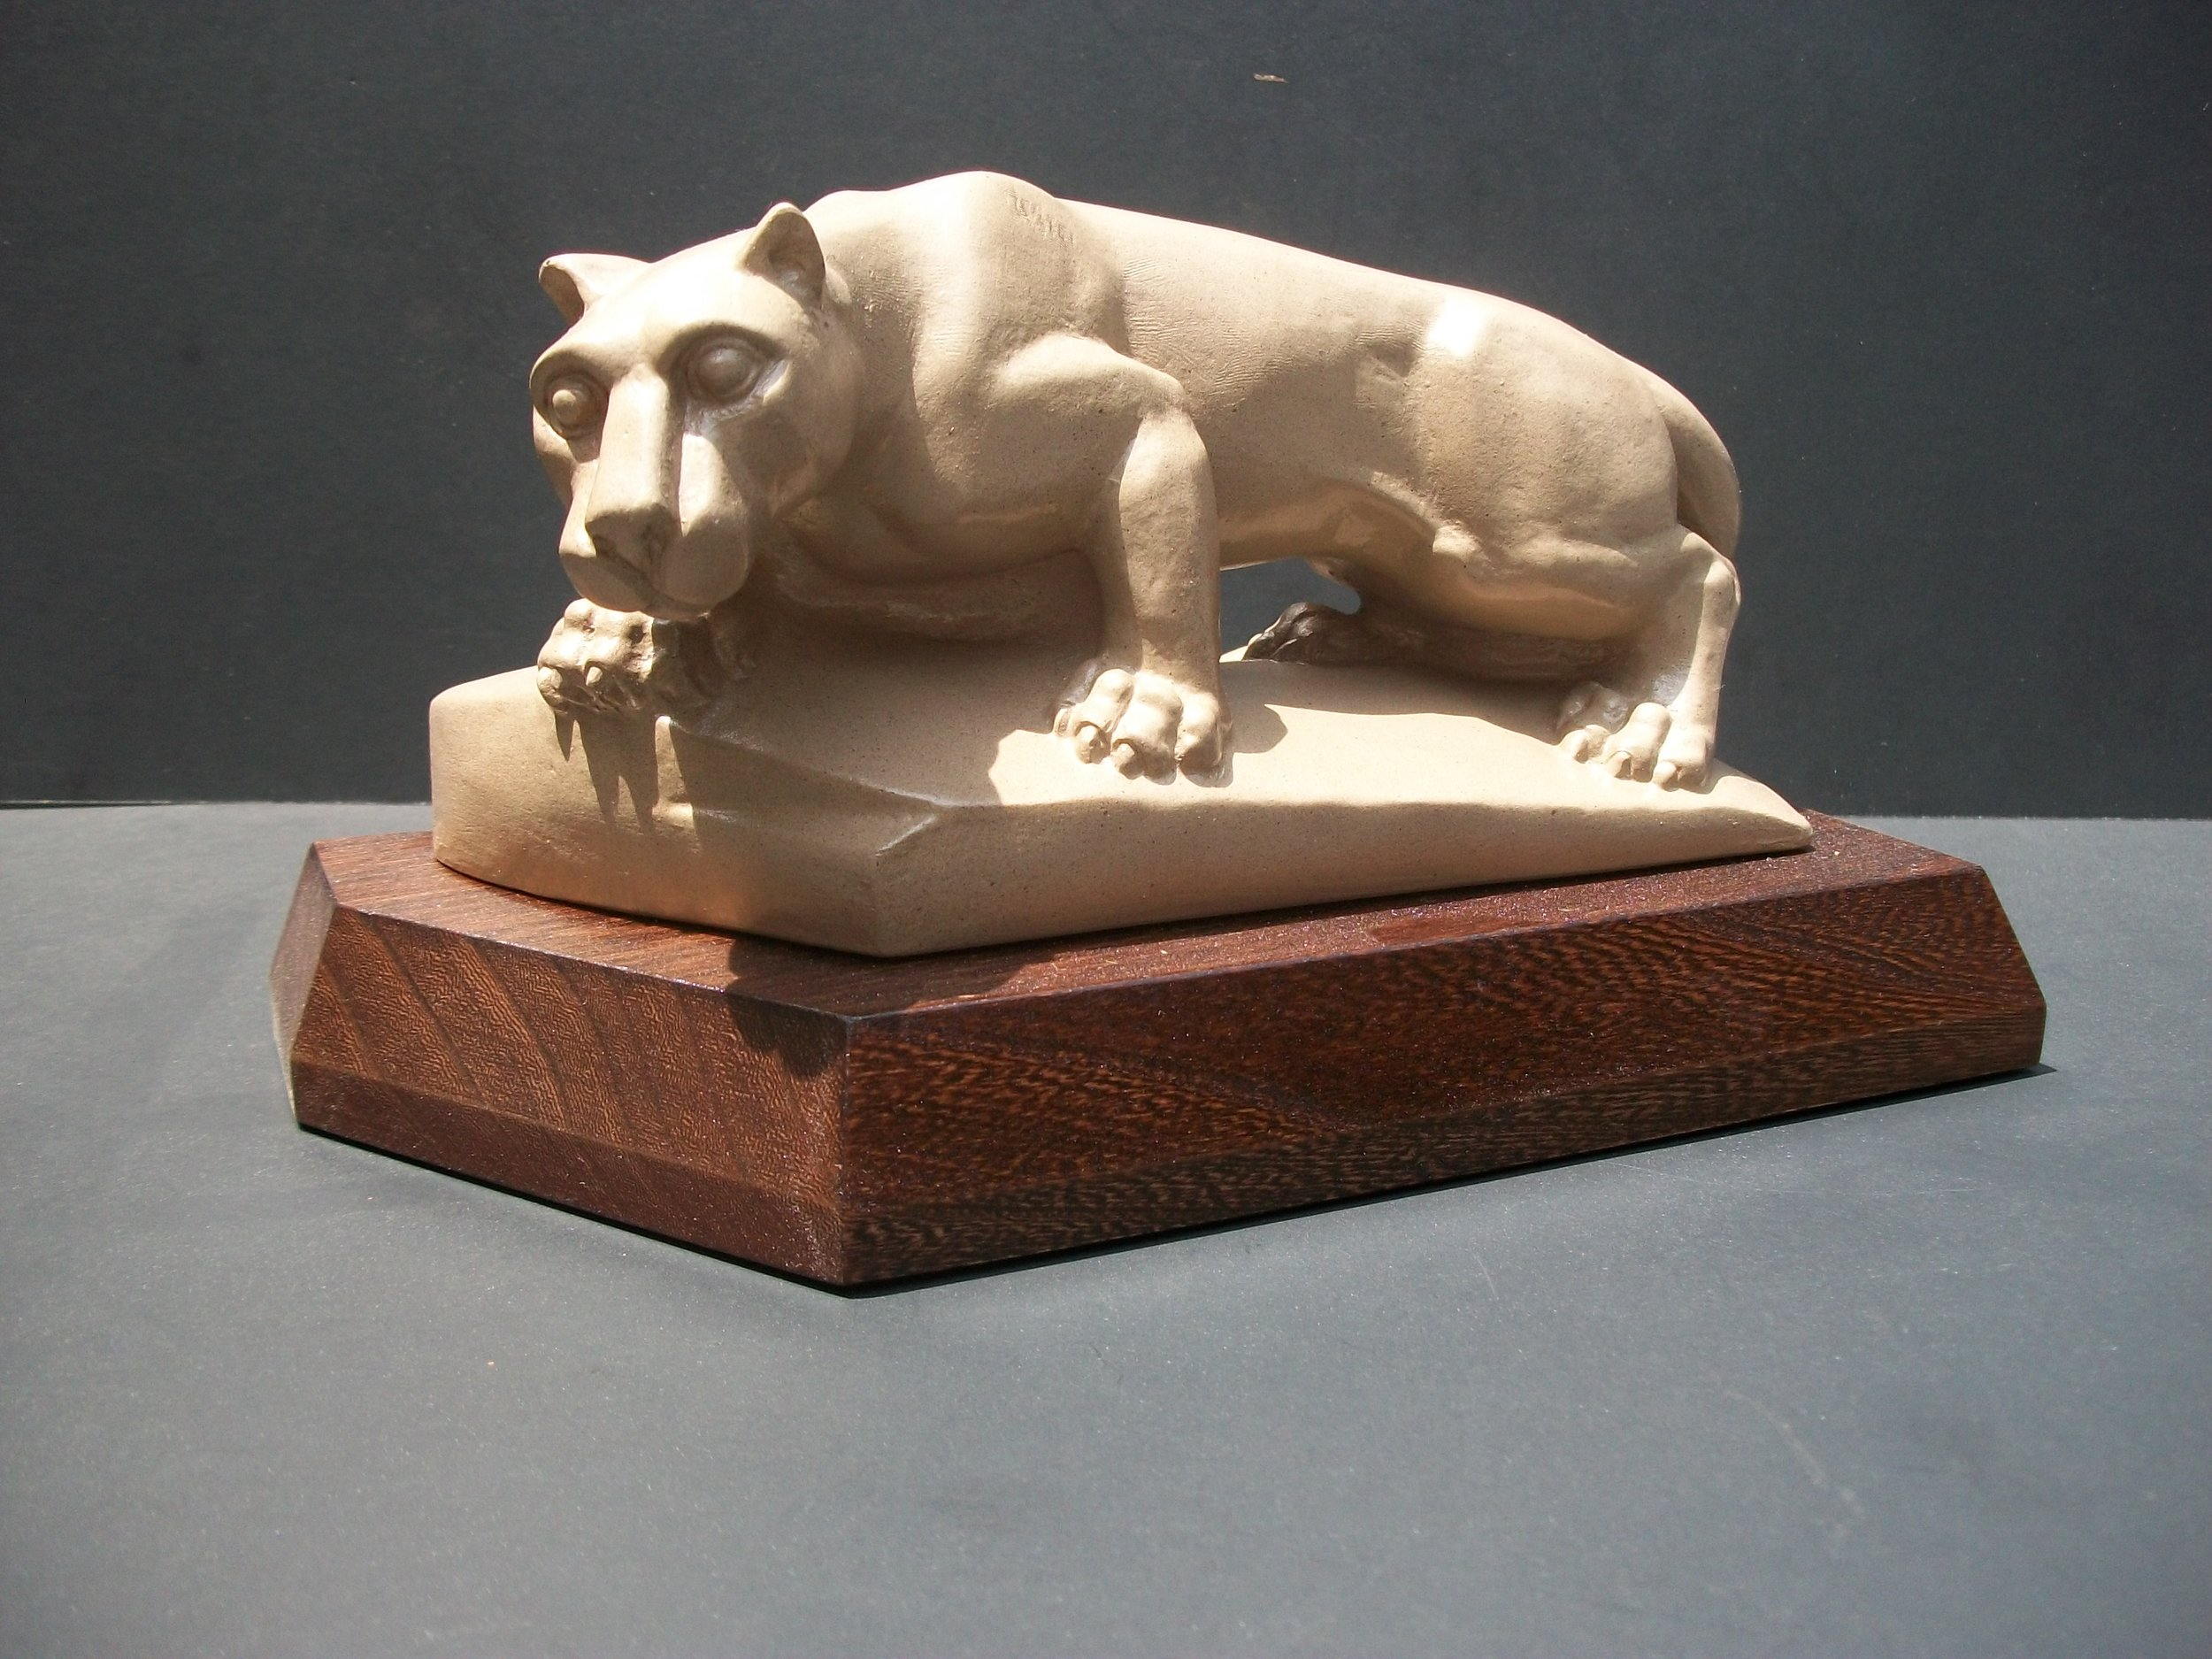 This piece is made in two separate parts, both made out of the resin with pecan shell flour. The finish on the nittany lion is done with a base coat of paint with a speckled spray on top. The base was finished with a stain and polished.